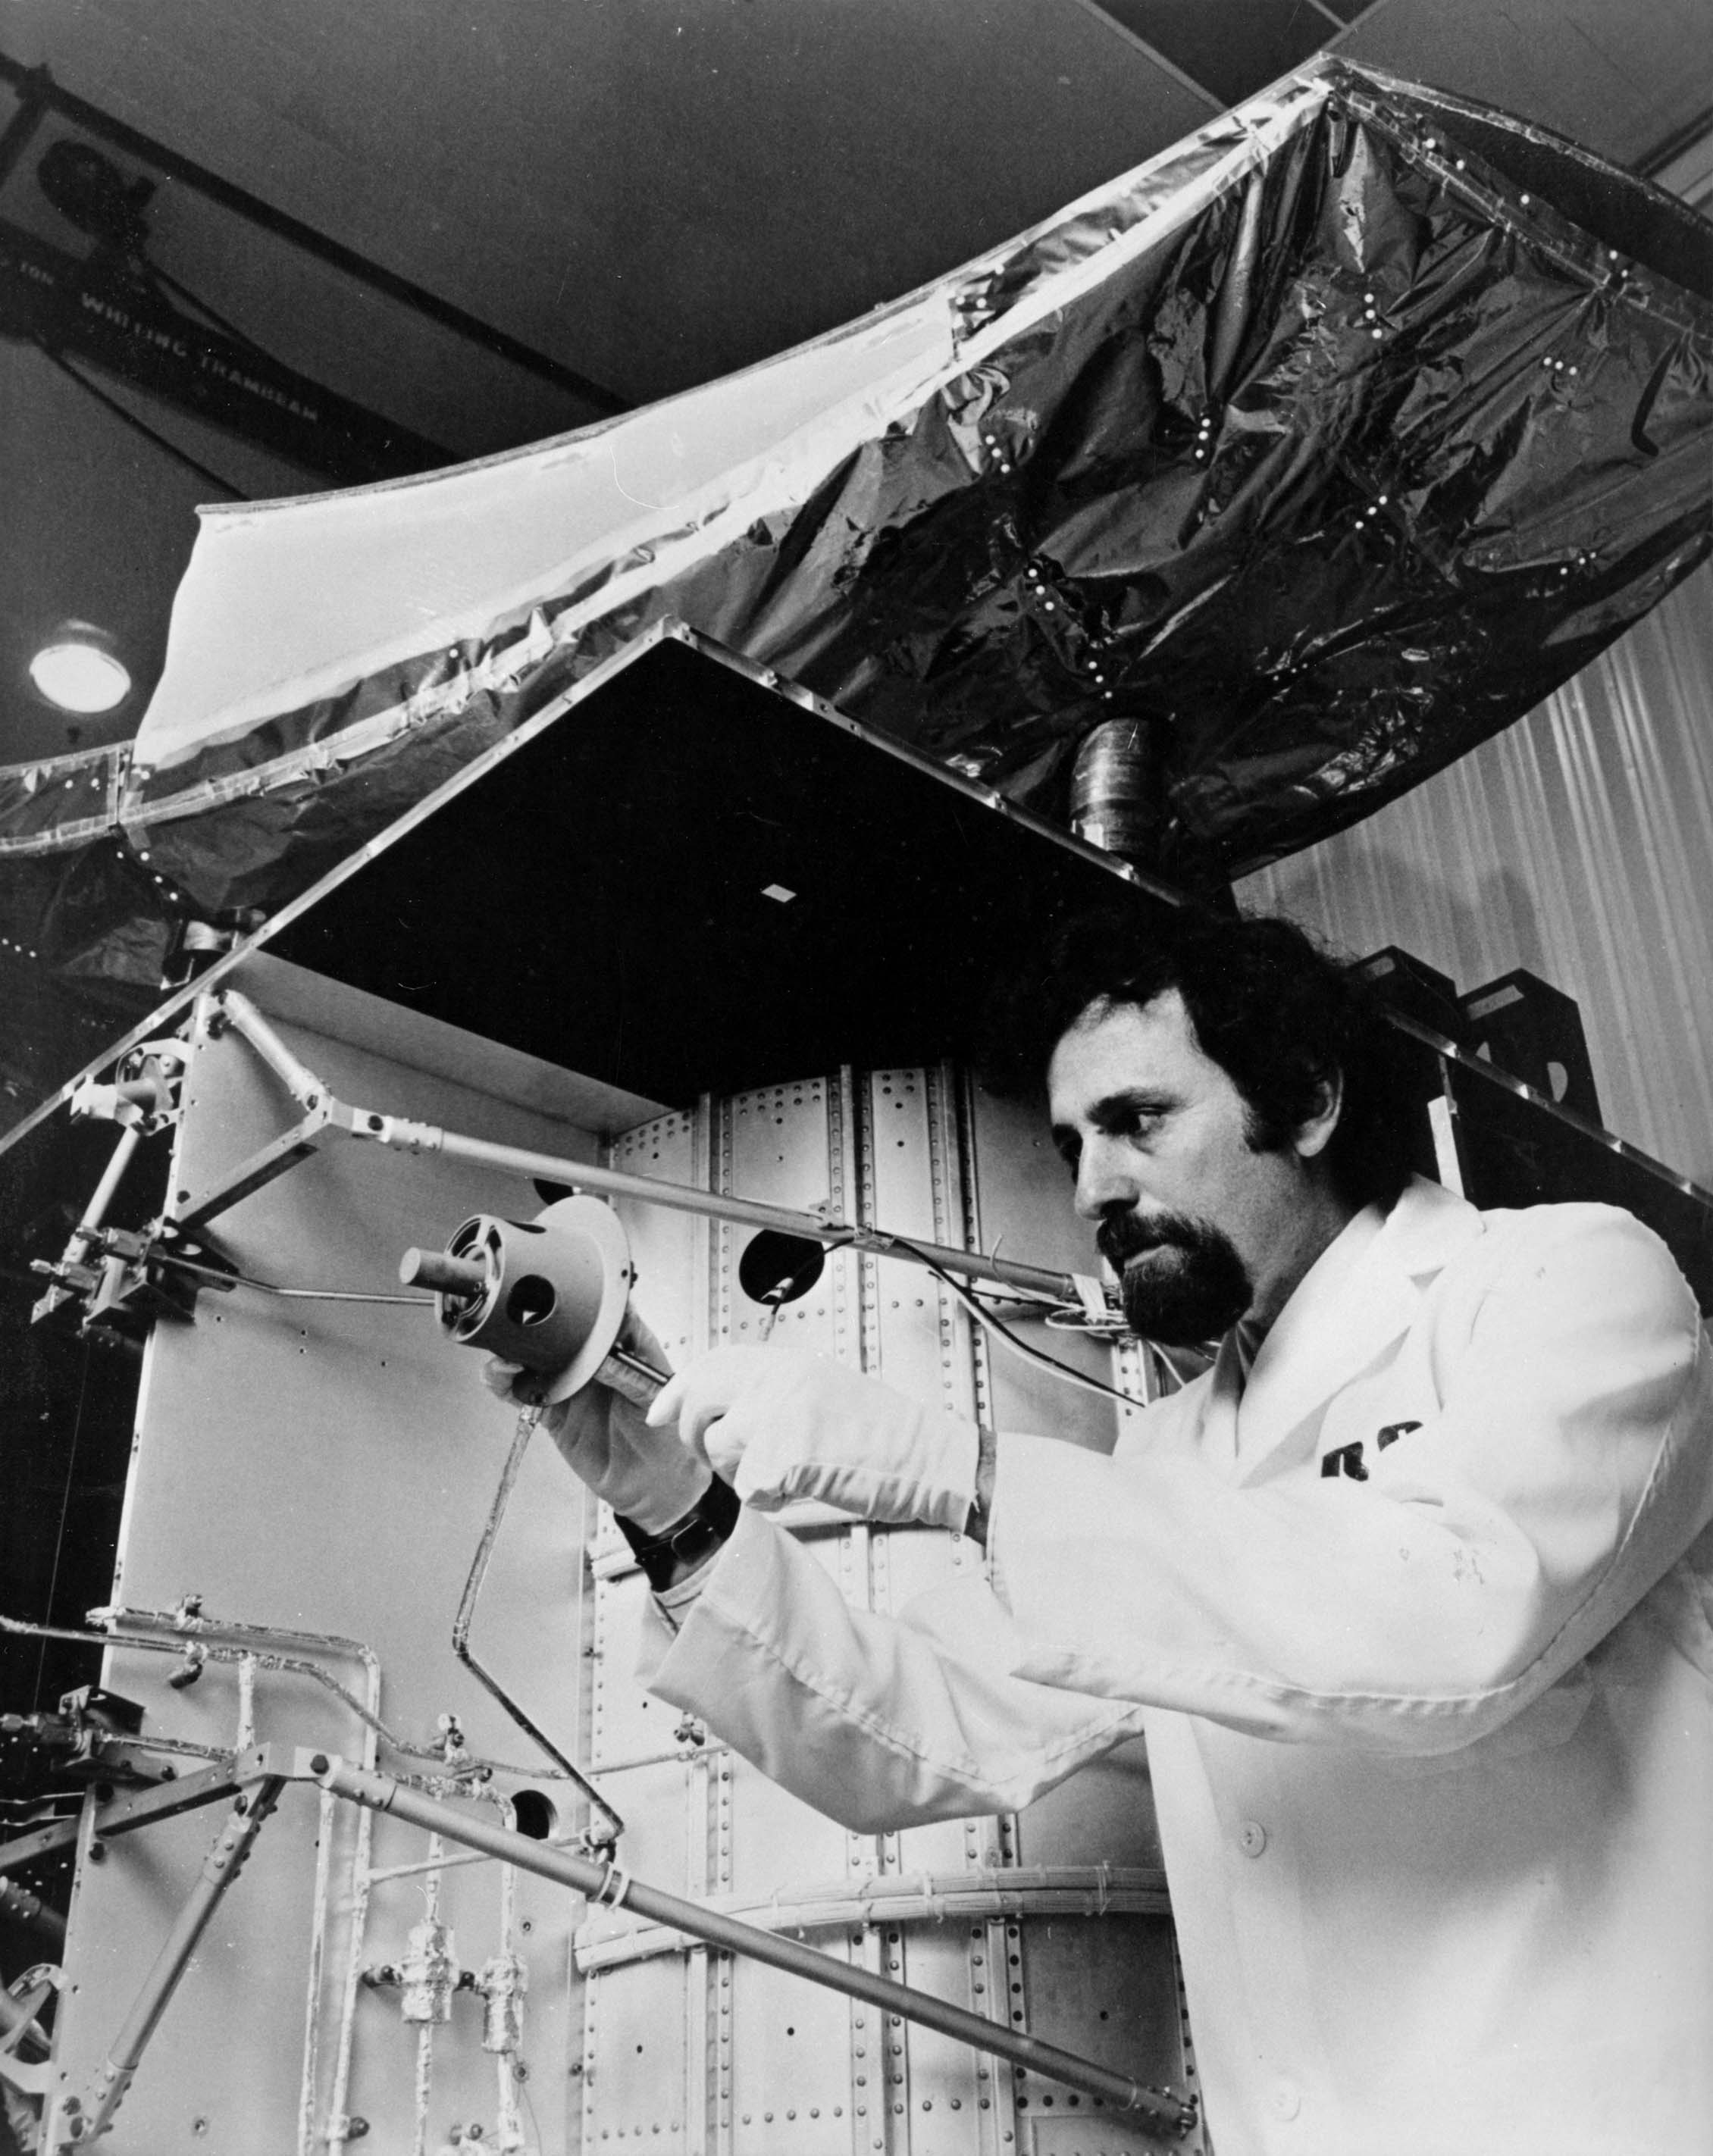 The RCA Satcom domestic communication satellite launched on December 13, 1975, spurred the cable television industry to unprecedented heights – with the assistance of HBO.